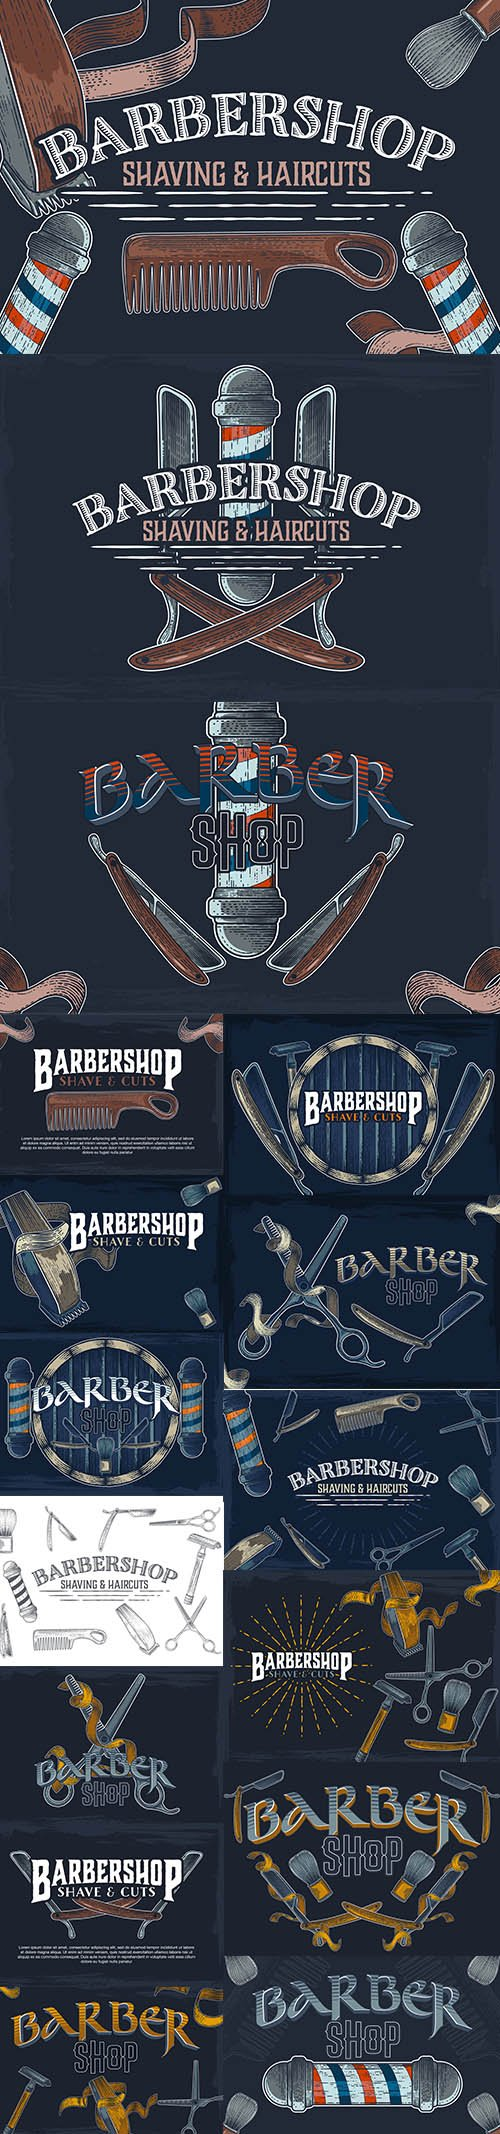 Hand-Drawn Vector Barber Shop Banners Illustrations